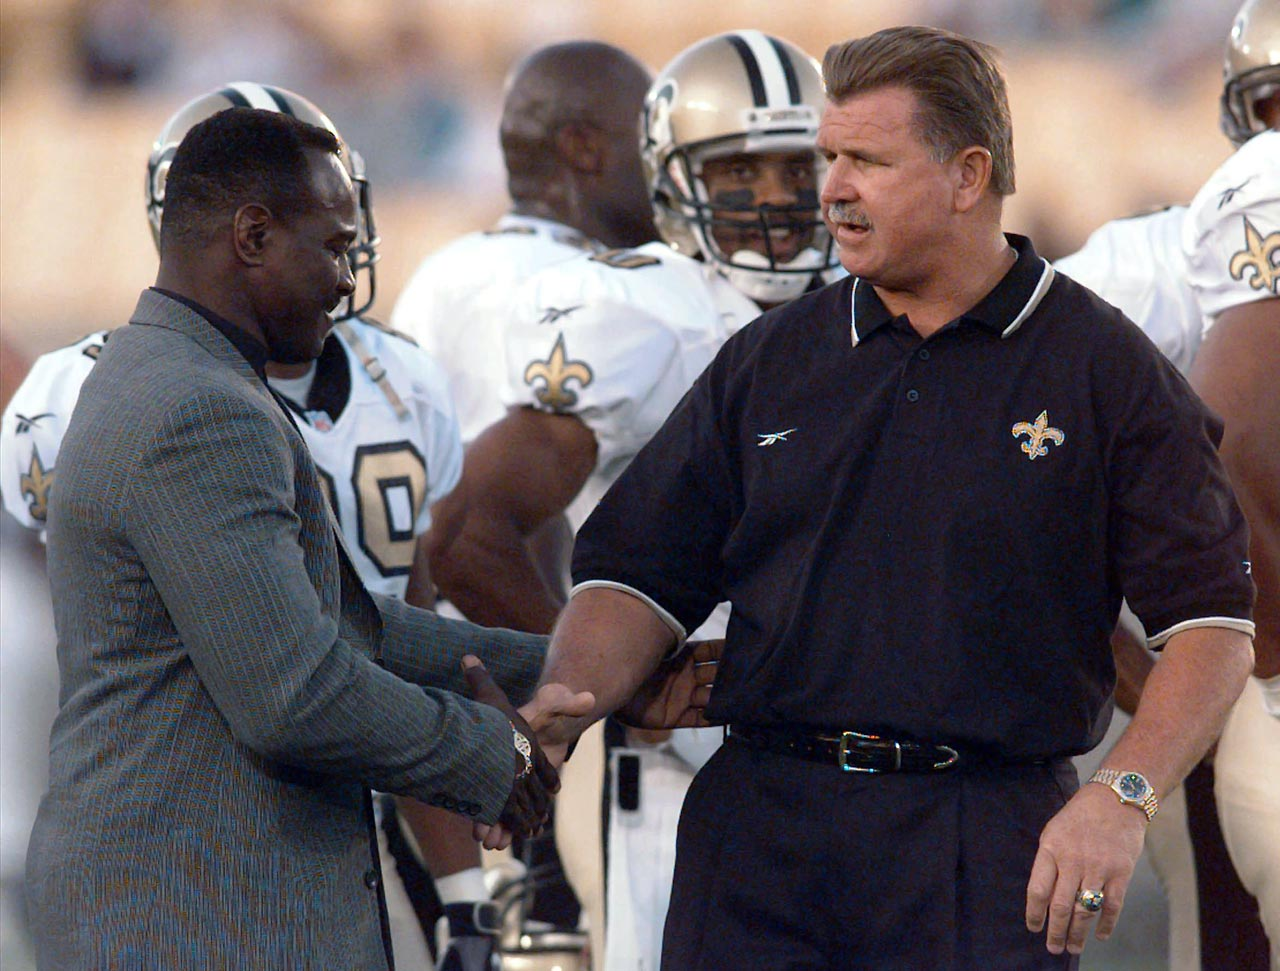 Walter Payton greets his former coach Mike Ditka, now the coach of the New Orleans Saints, during pre-game warmups before the Saints-Bears game on Aug. 22, 1997 in Chicago.